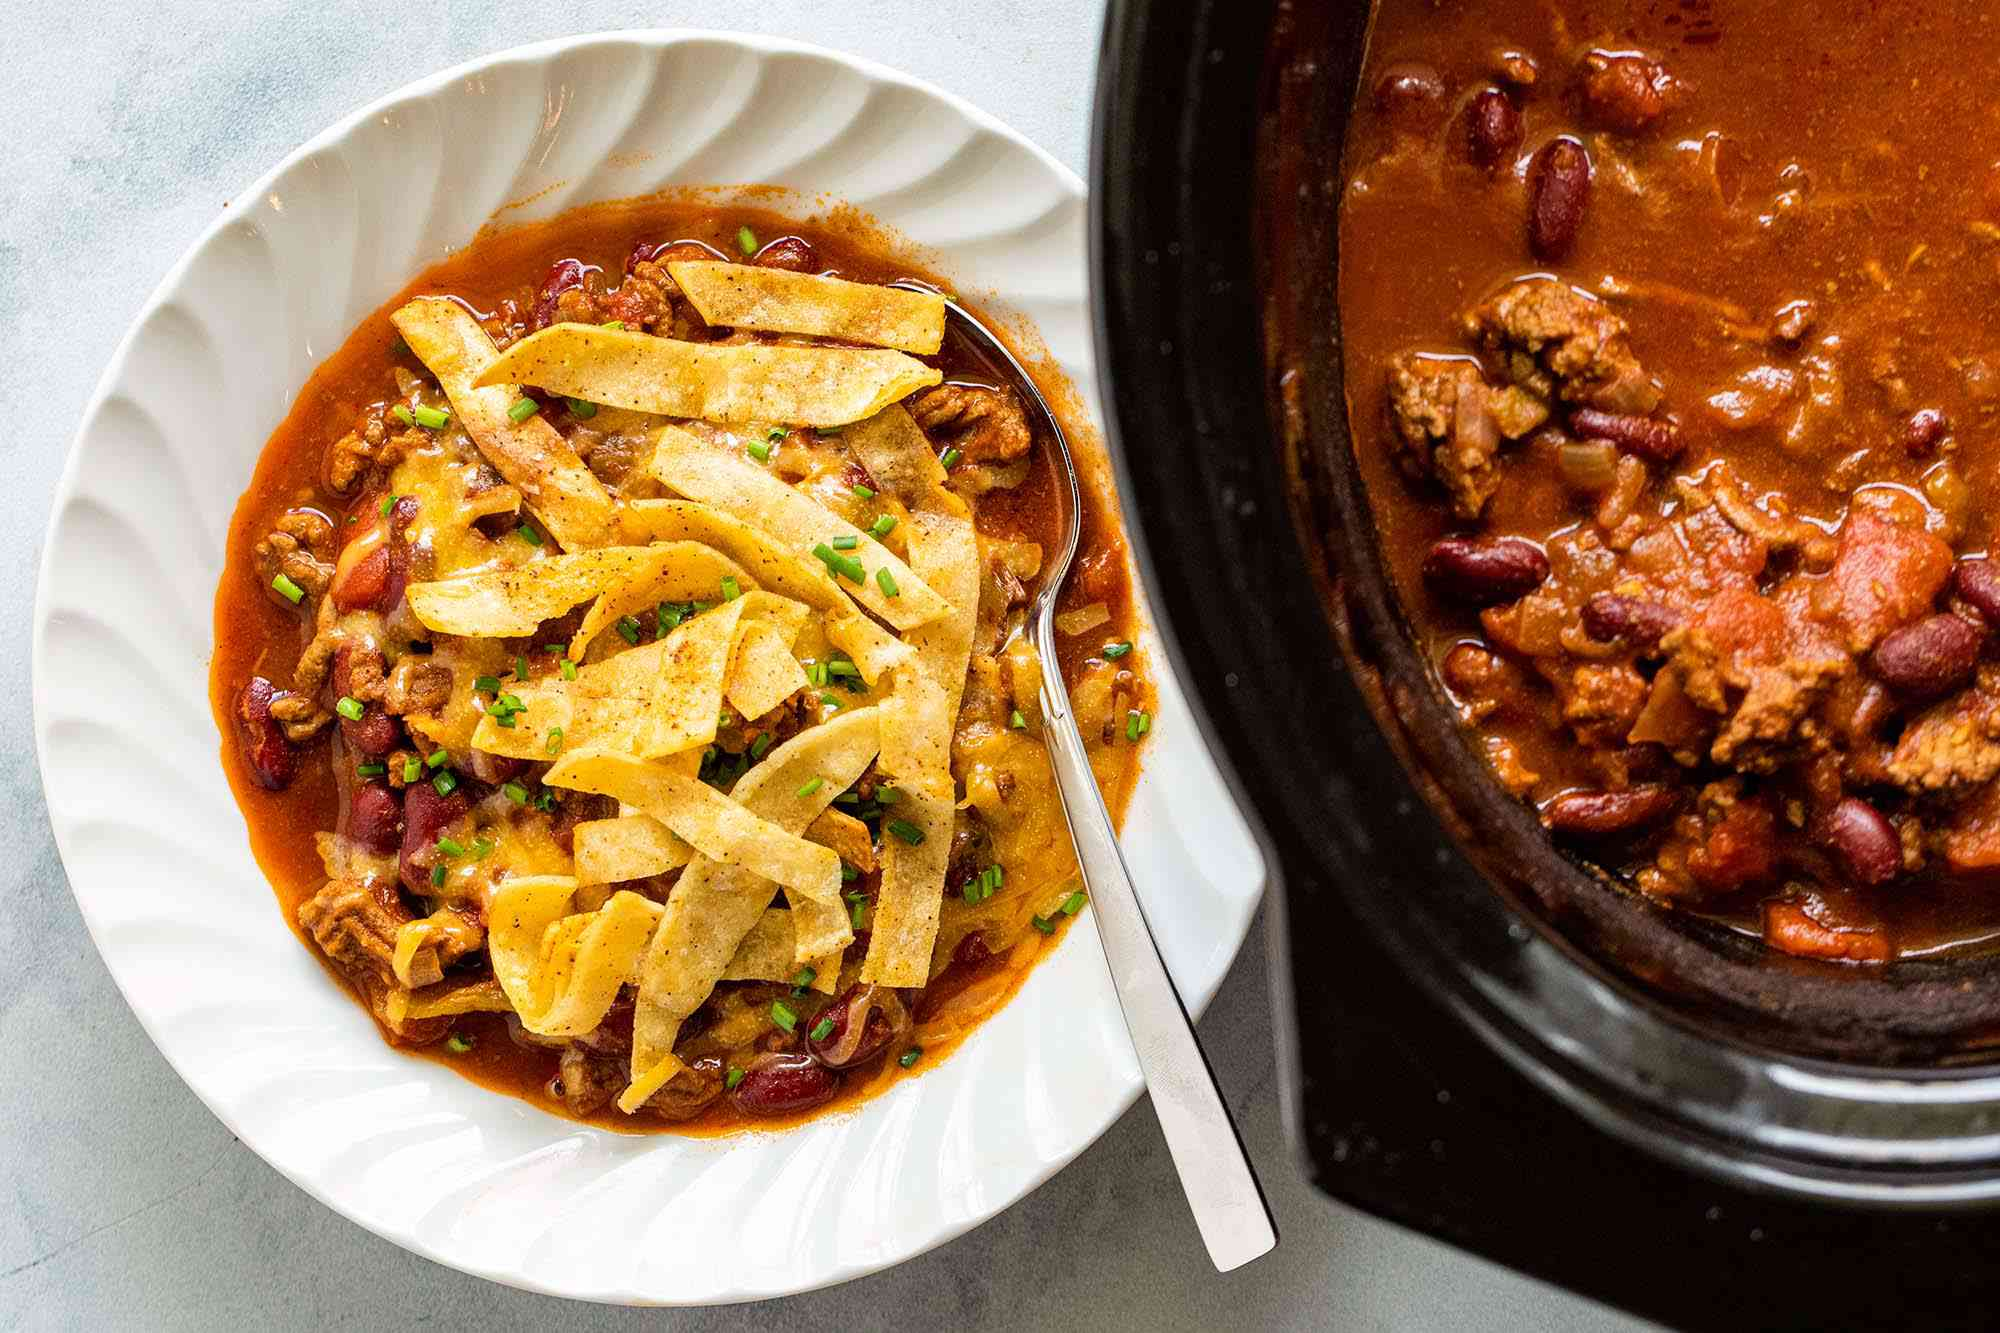 Easy Slow Cooker Beef and Bean Chili topped with fried tortilla stips in a white bowl. A crock pot is to the right of the bowl.